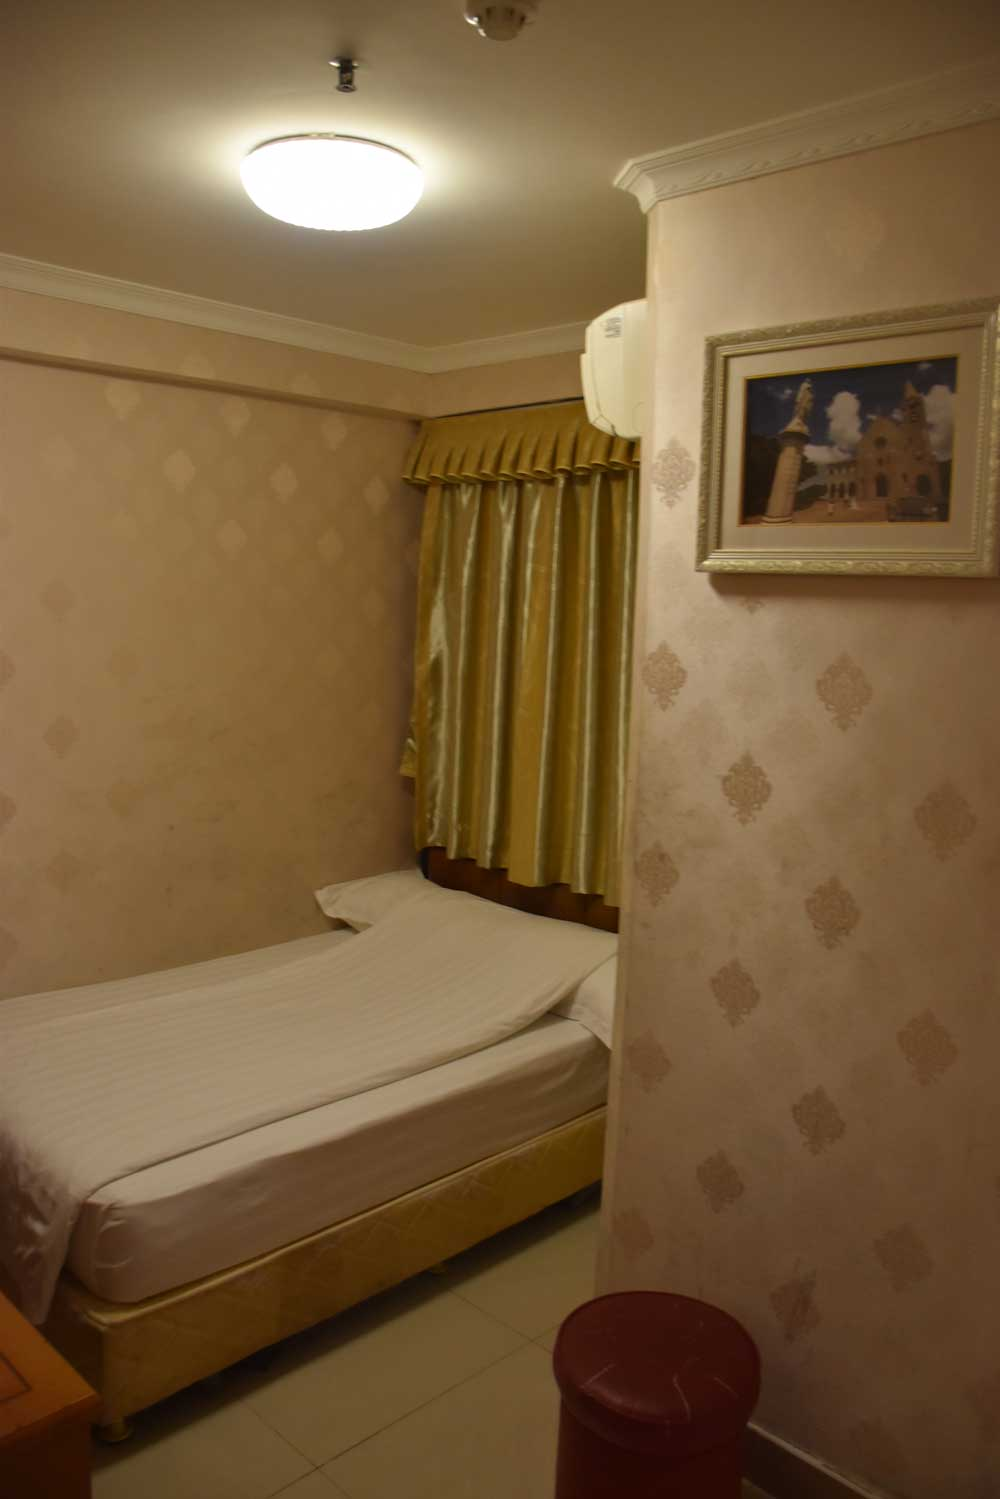 Holiday Hotel Macau room